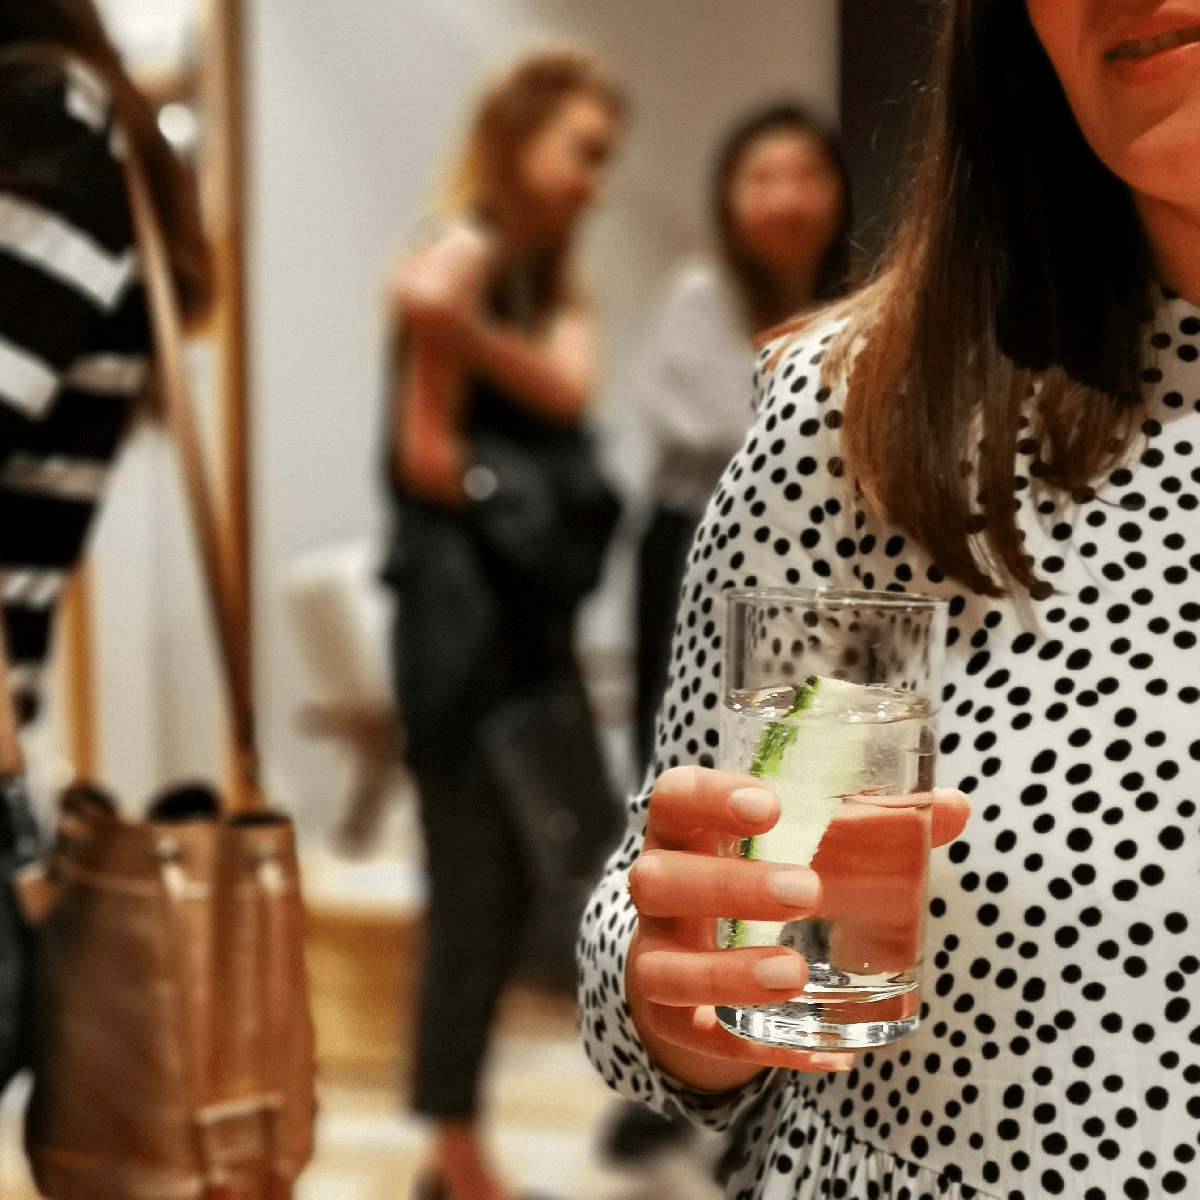 verbena and tonic in hand